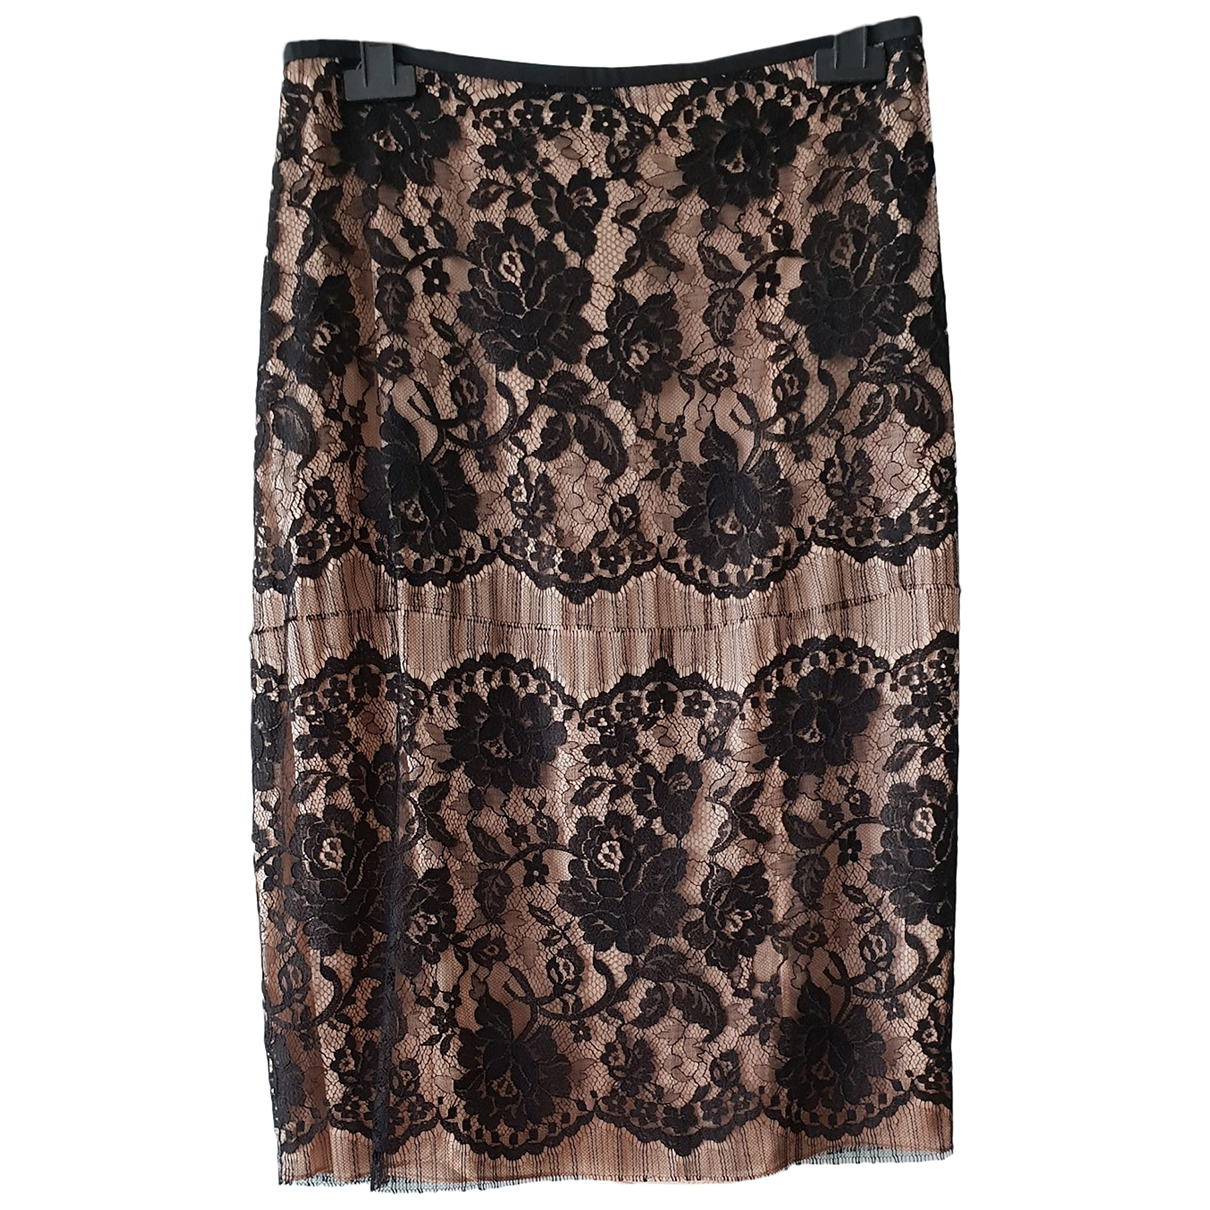 Lanvin \N Black Silk skirt for Women 38 FR